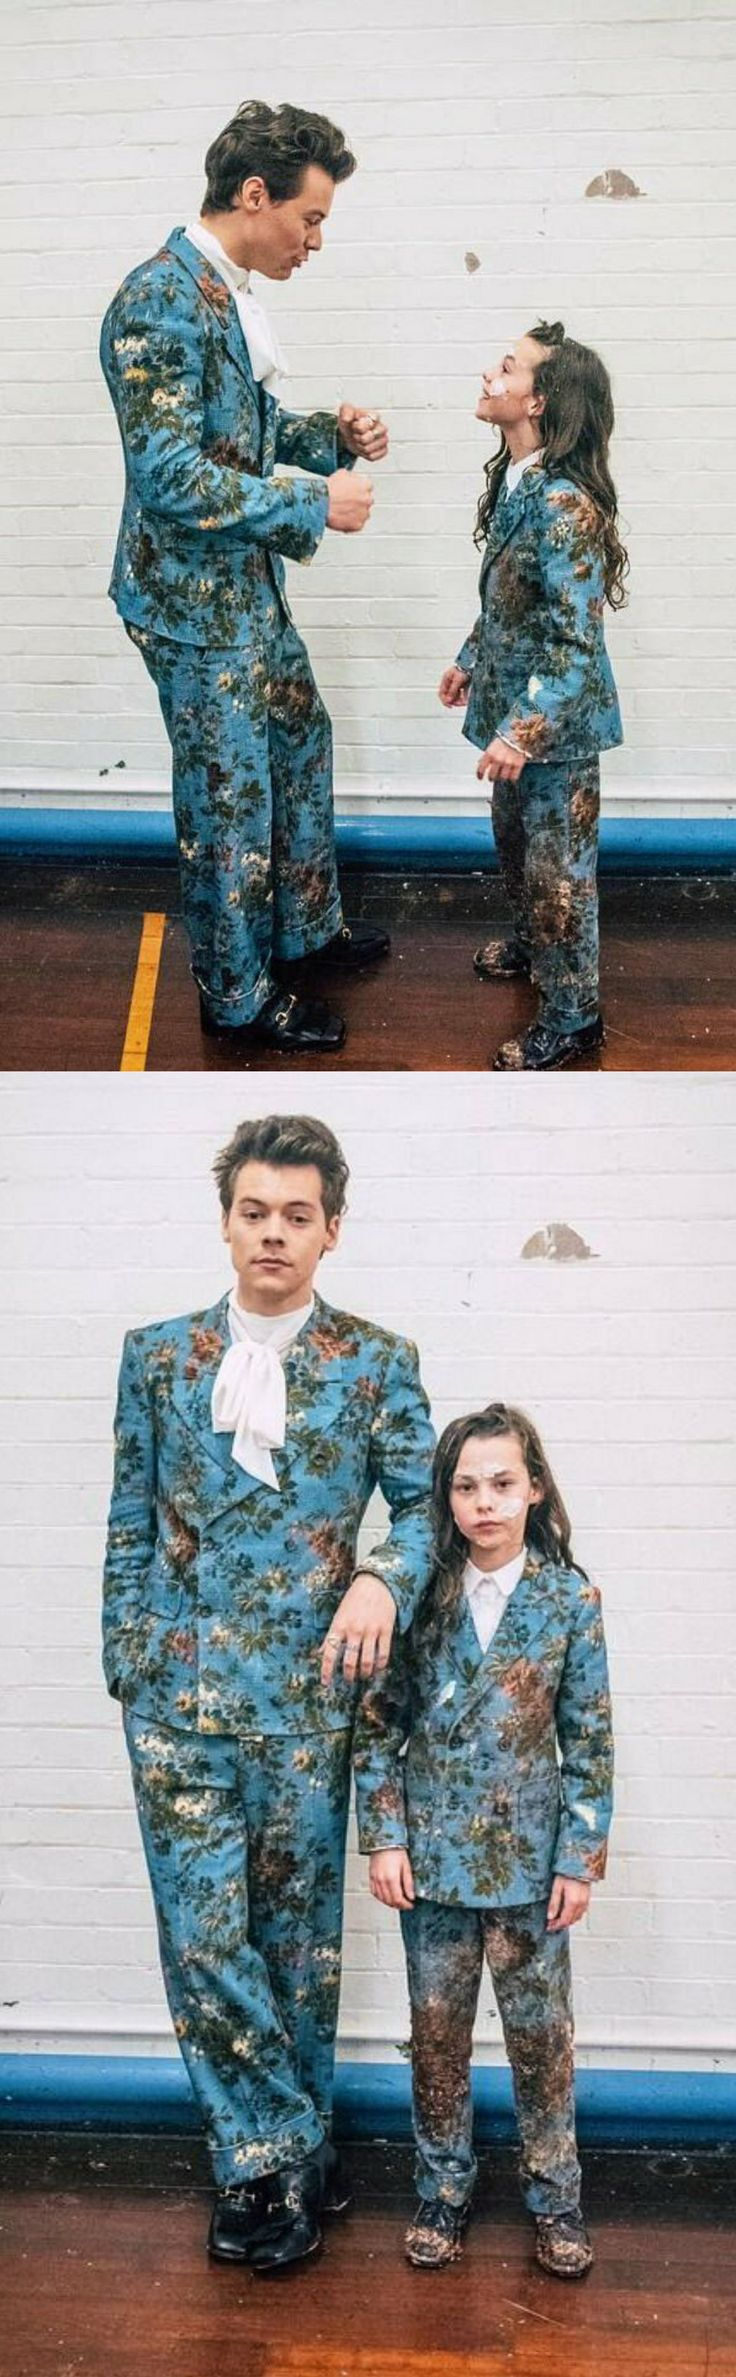 Harry Styles and mini Harry Styles wearing matching Gucci suits for Kiwi music video